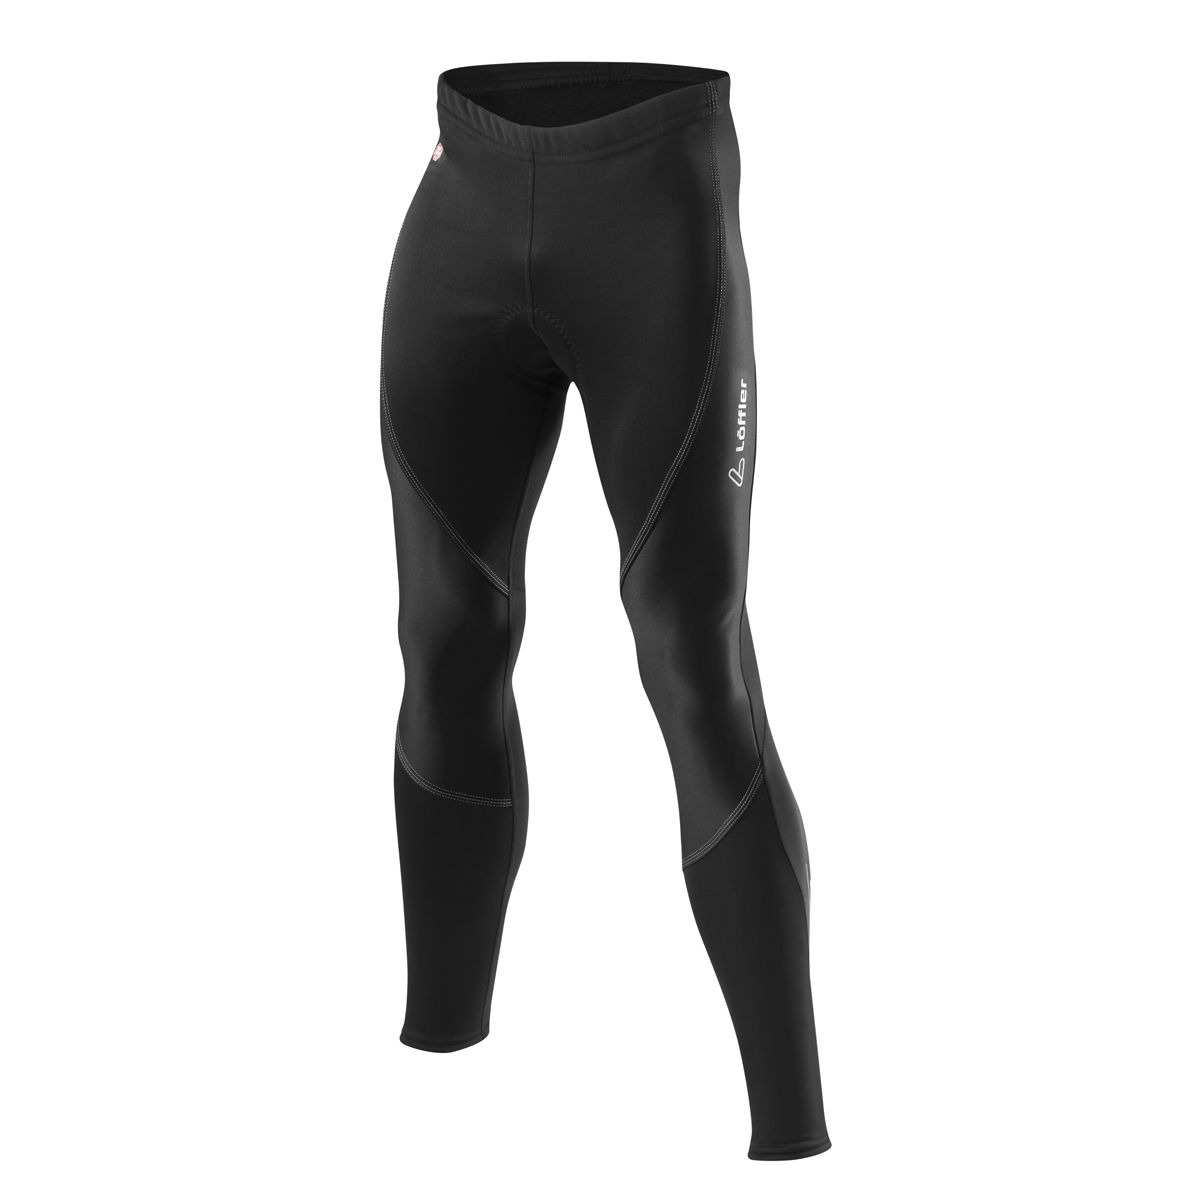 HR. BIKE HOSE LANG WS SOFTSHELL WARM Thermo-Radhose